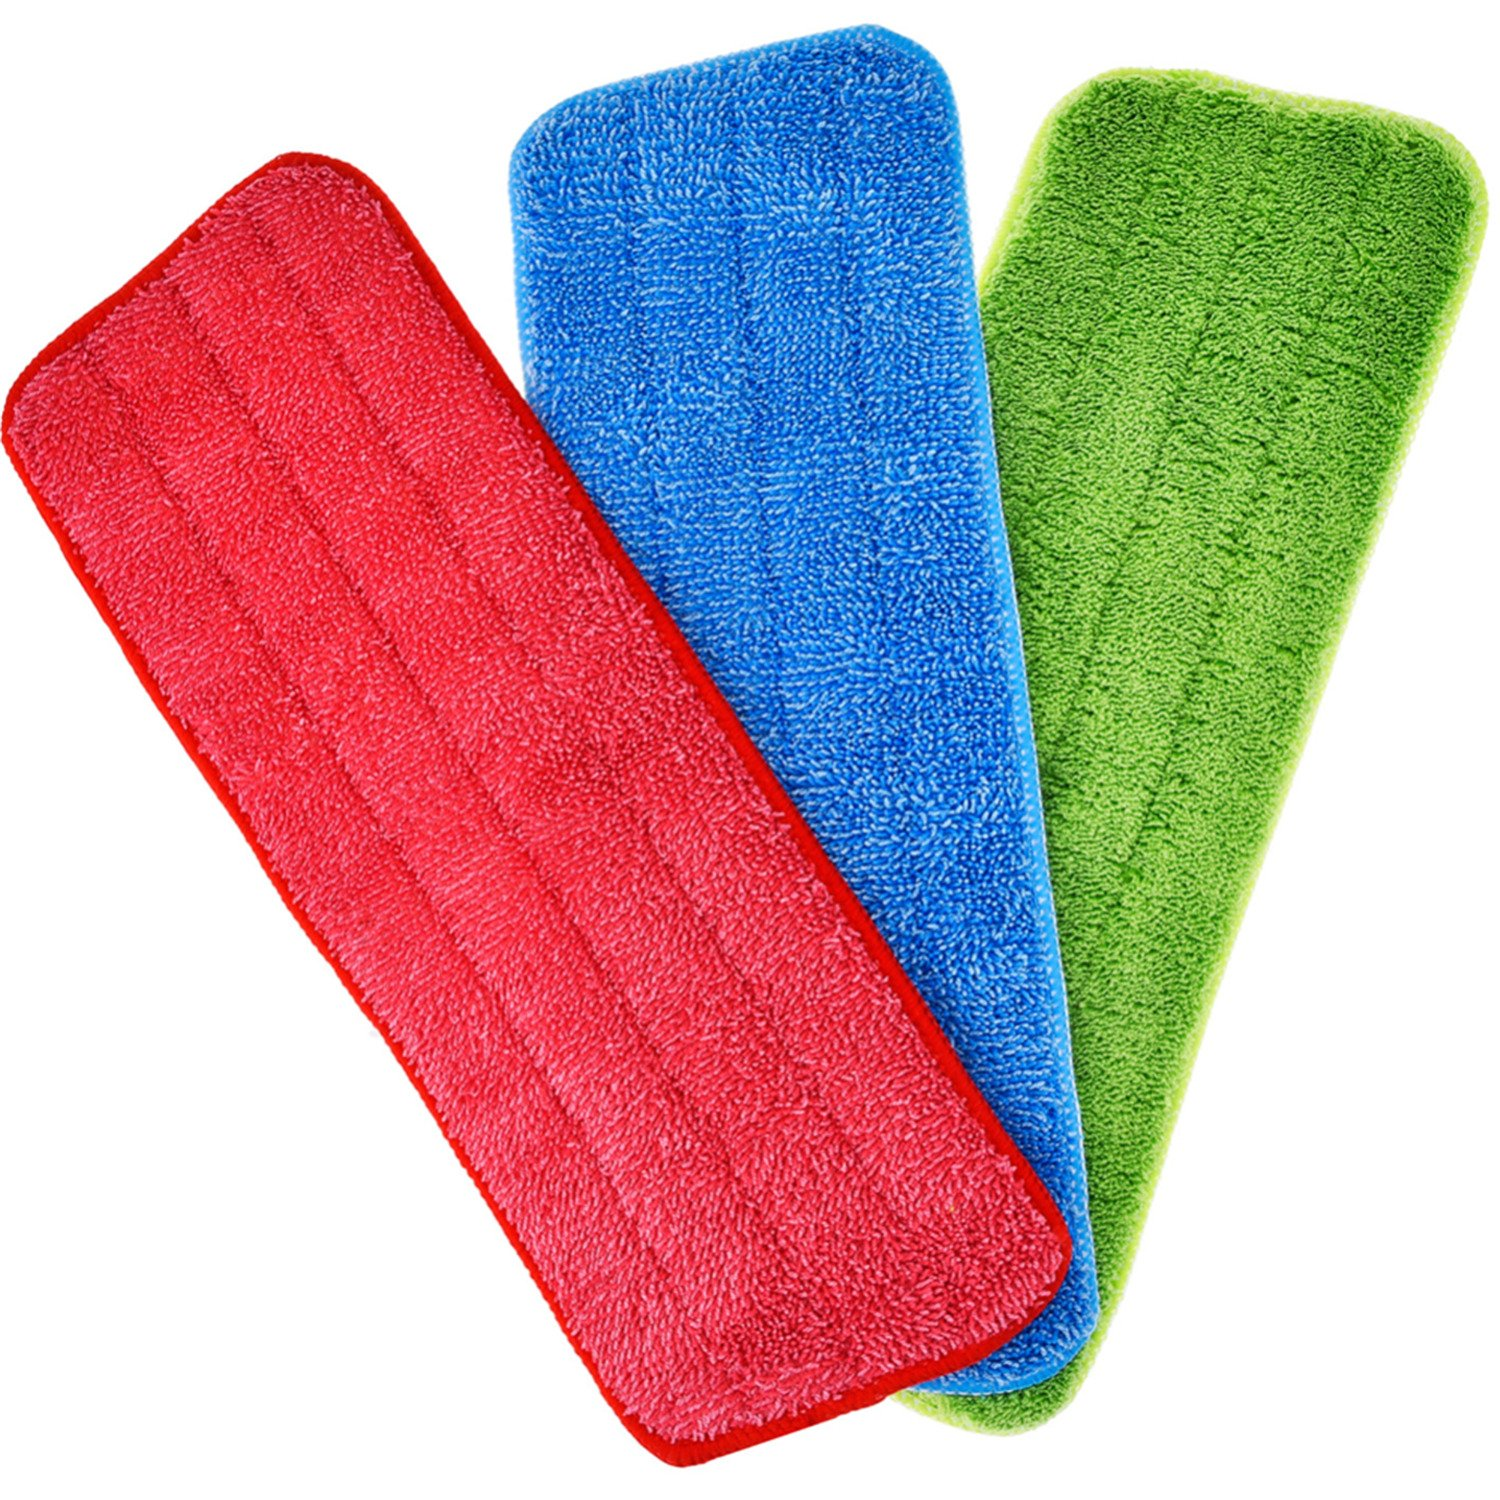 TecUnite 6 Pieces Microfiber Cleaning Pads Reveal Mop 16 to 18 inch Fit for Most Spray Mops and Reveal Mops Washable (16.5 x 5.5 inch) by TecUnite (Image #1)